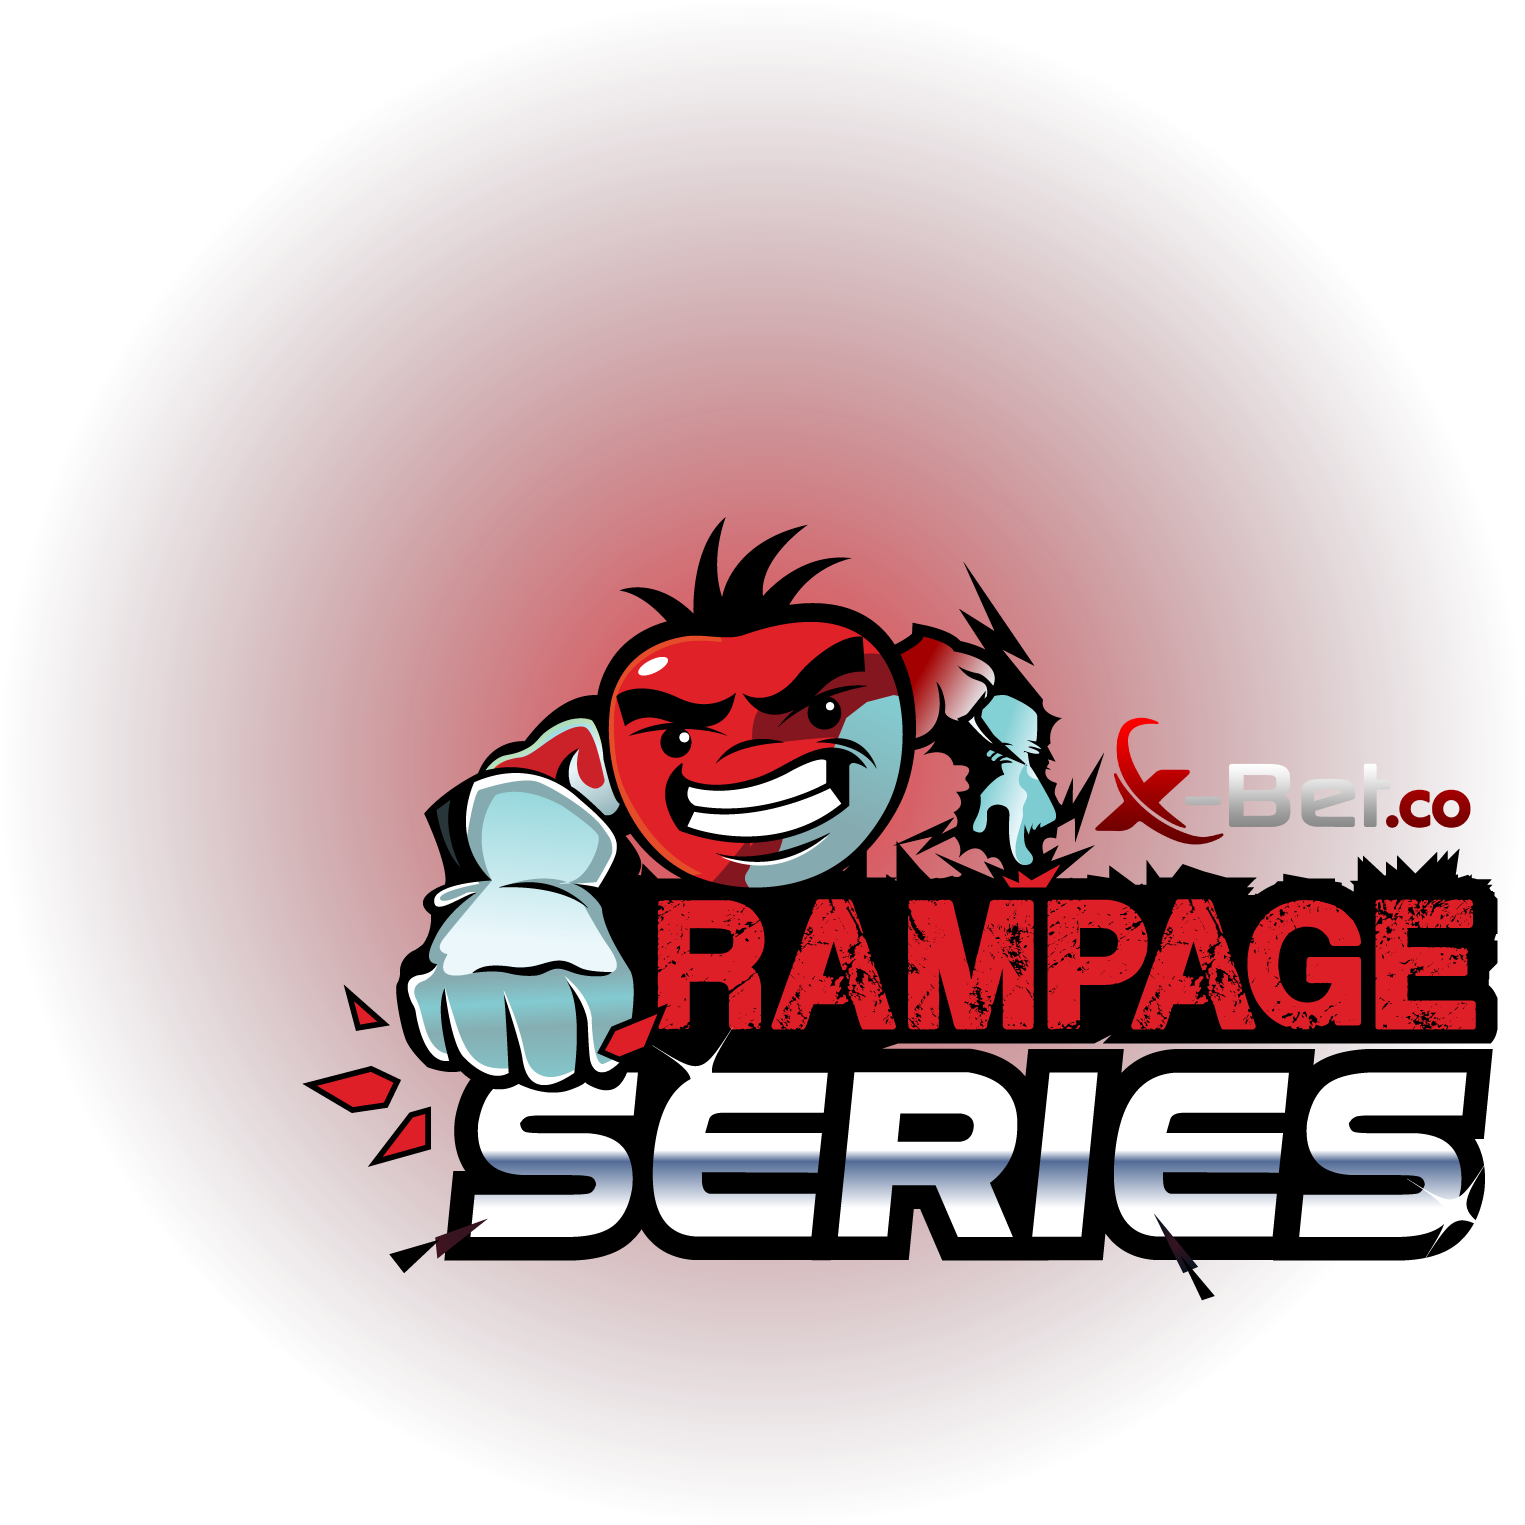 X-Bet.co Rampage Series #3